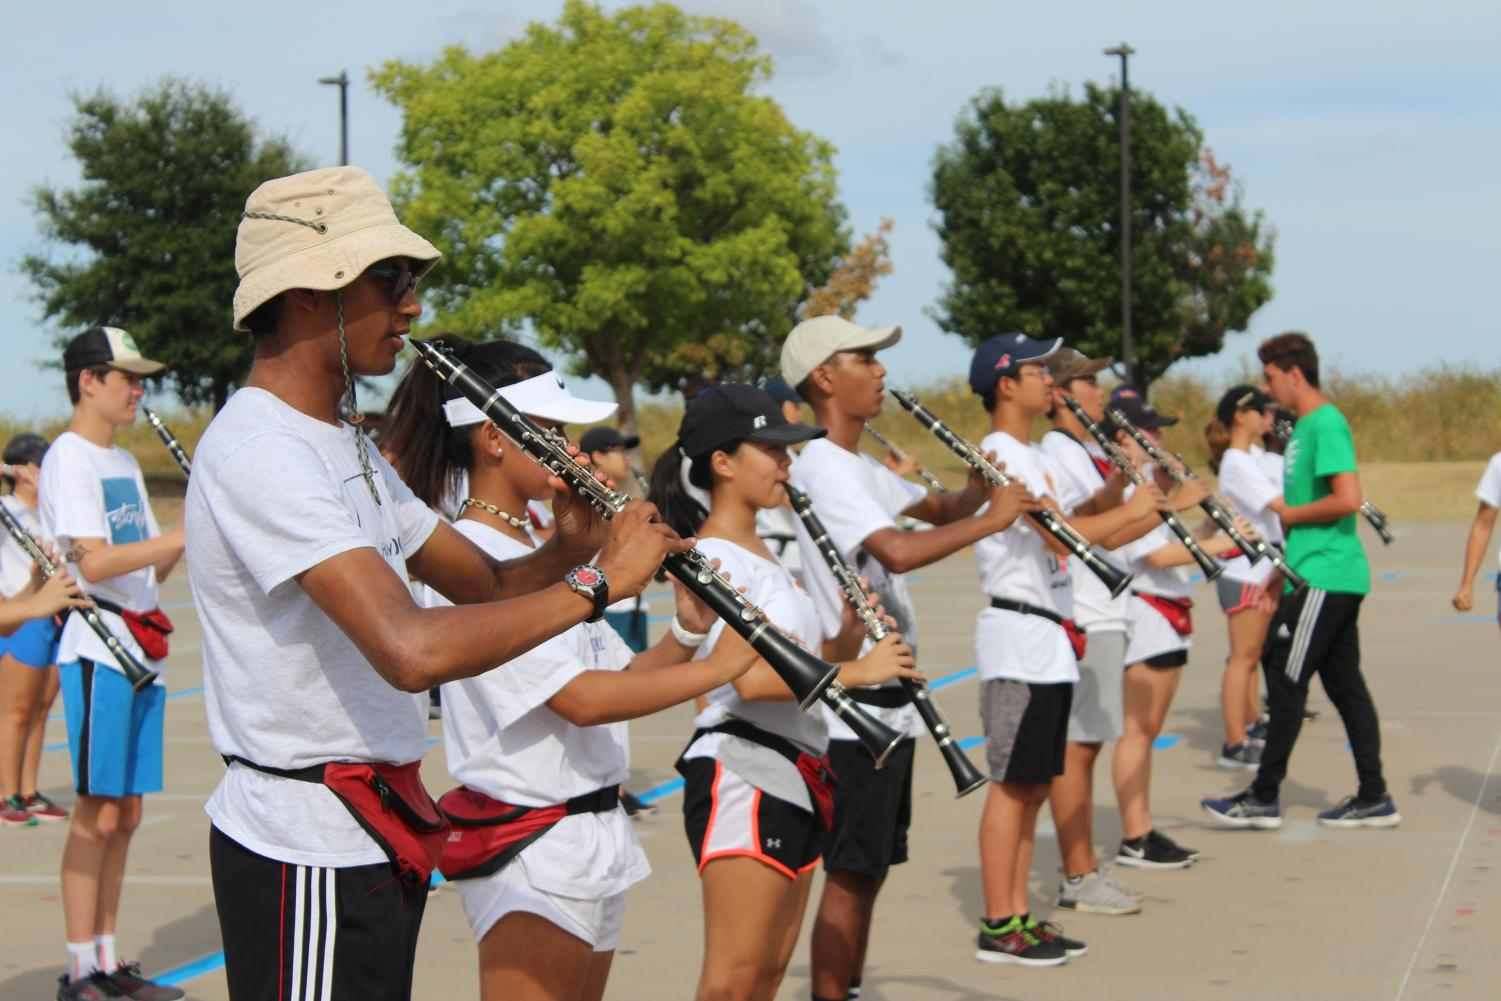 The band has been preparing all season, to perform at their UIL competition this Saturday. The band hopes to showcase their cumulative effort throughout the year, and hopefully make their way to state.